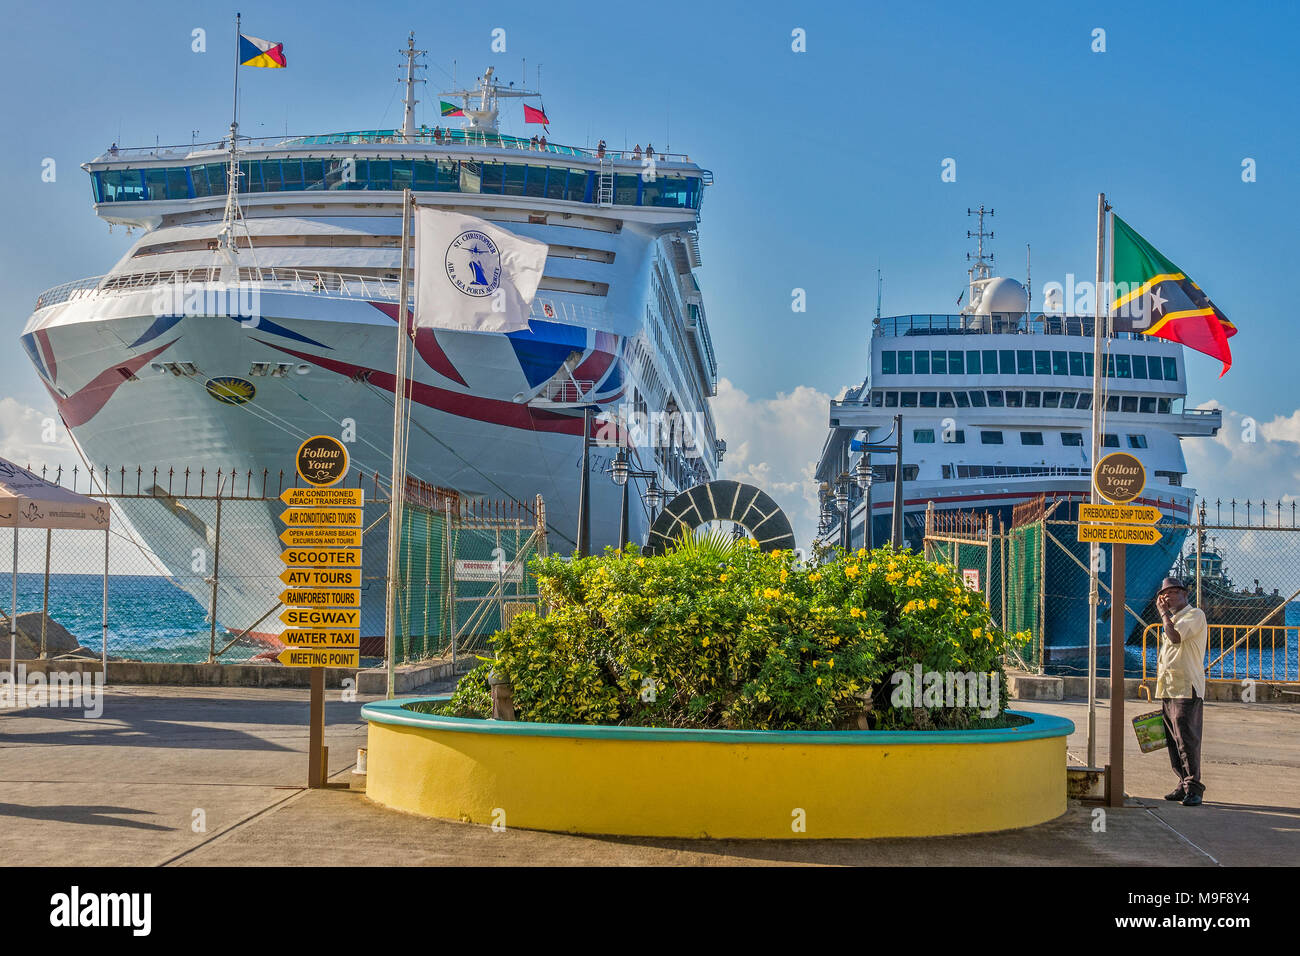 ships in the port of zante basseterre st kitts west indies stock